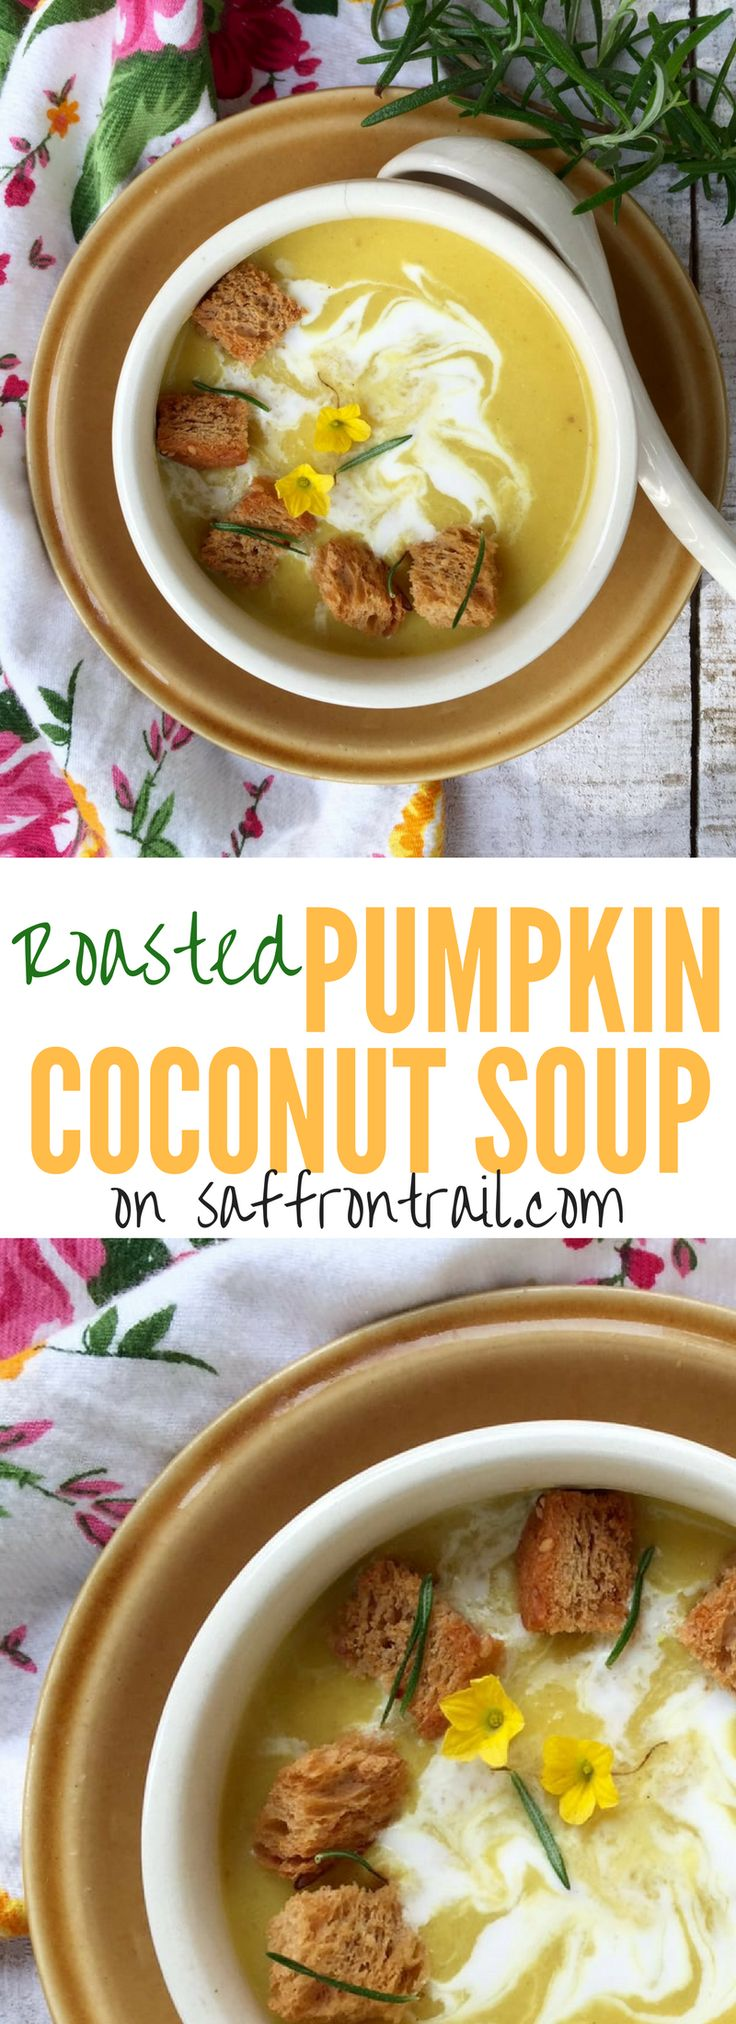 Recipe for a roasted pumpkin coconut soup flavoured with rosemary and ginger - hearty enough for dinner when paired with some bread.